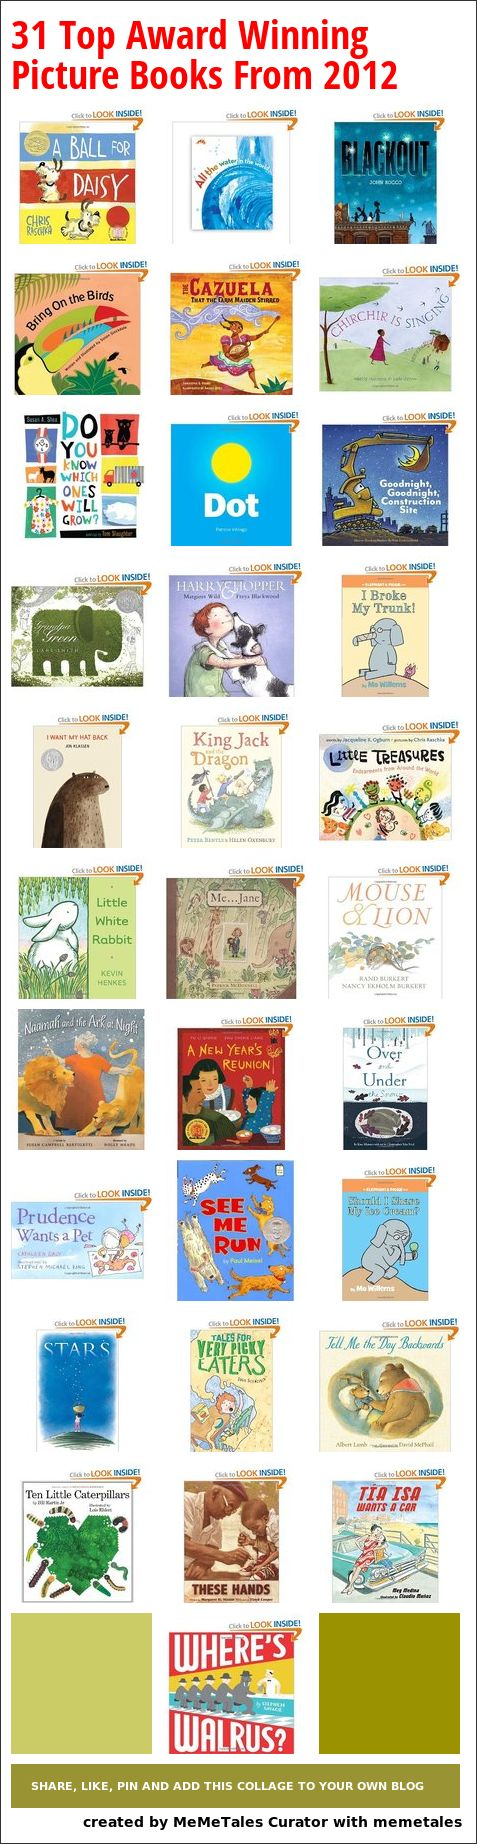 31 Top Award Winning Picture Books From 2012